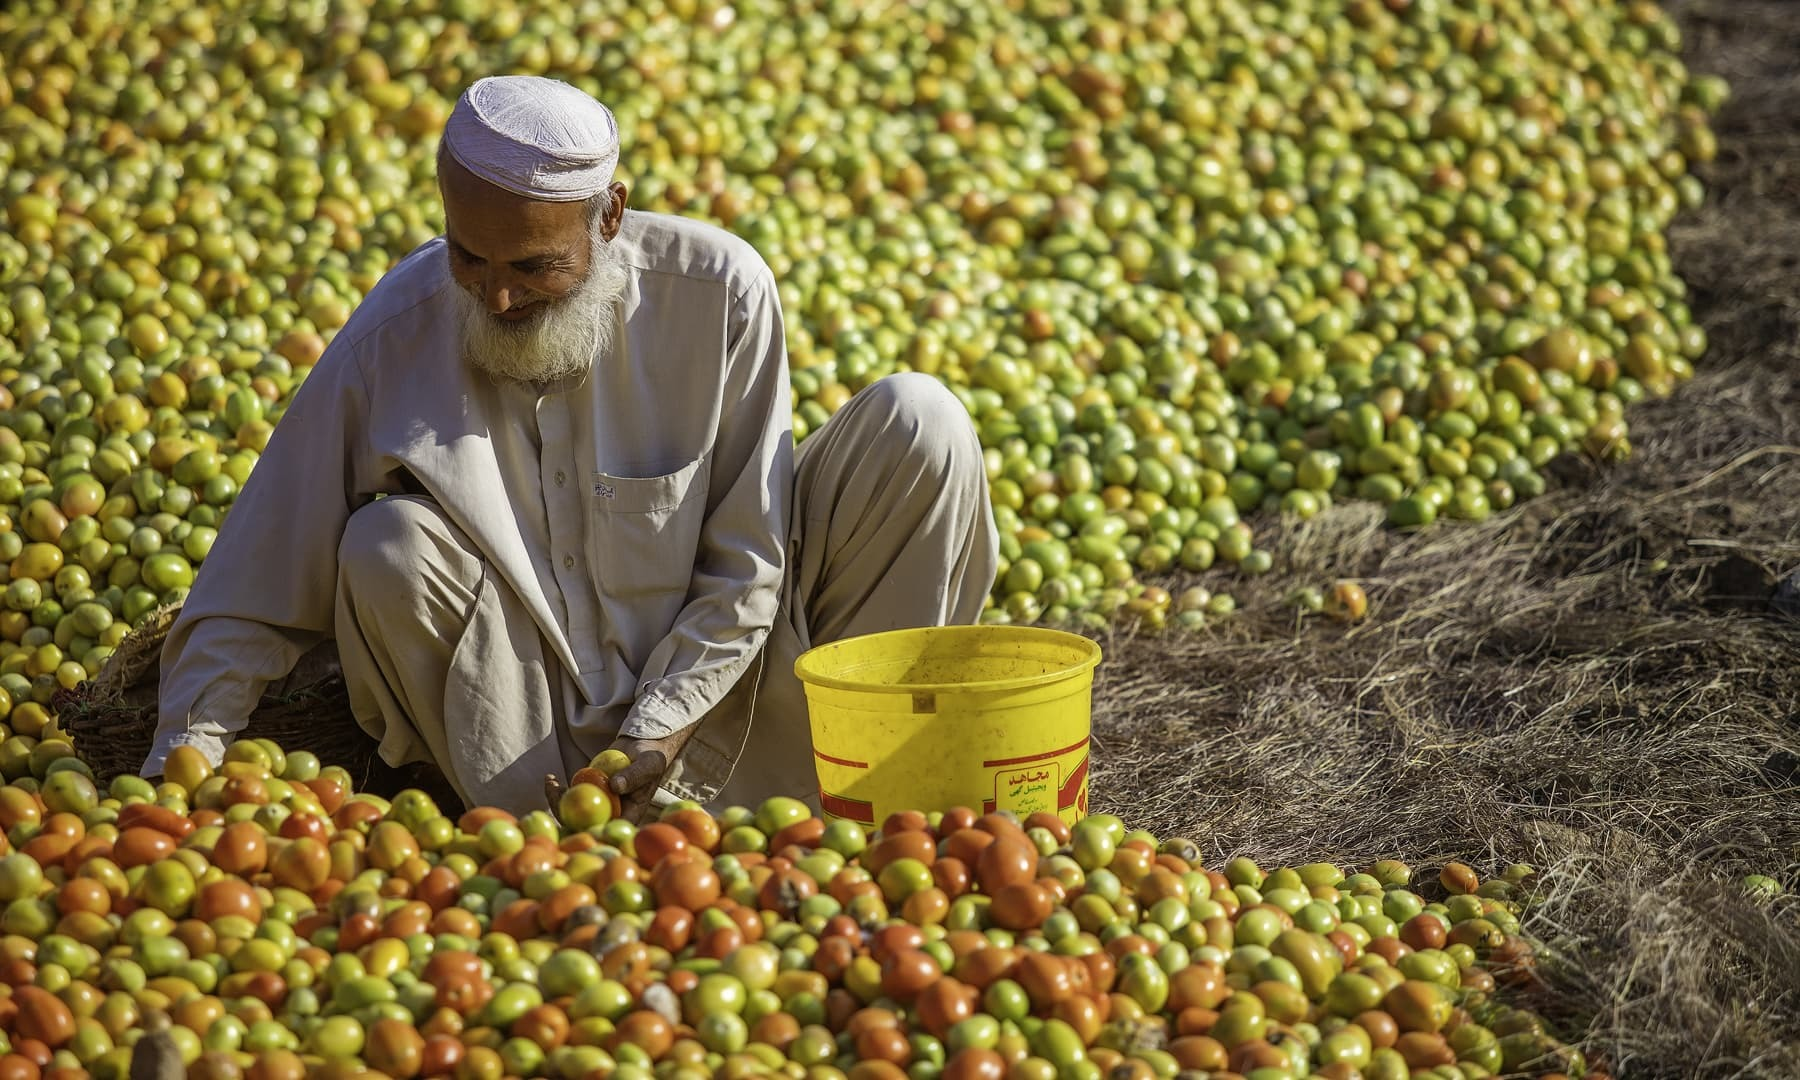 Khazta Baz Khan working in his field.